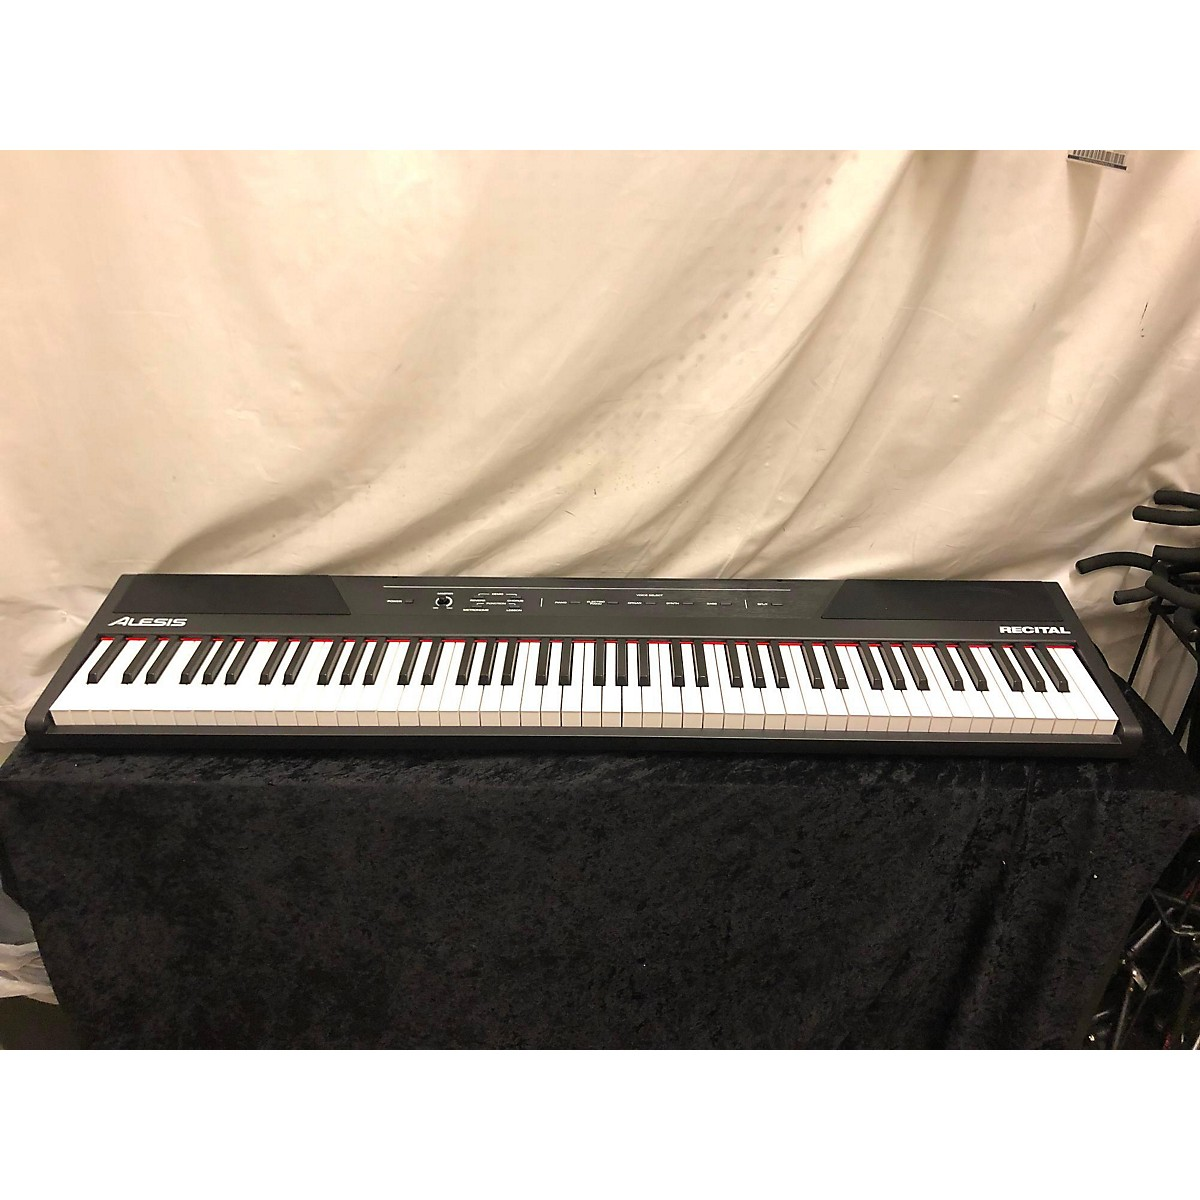 Alesis Recital 88 Keys